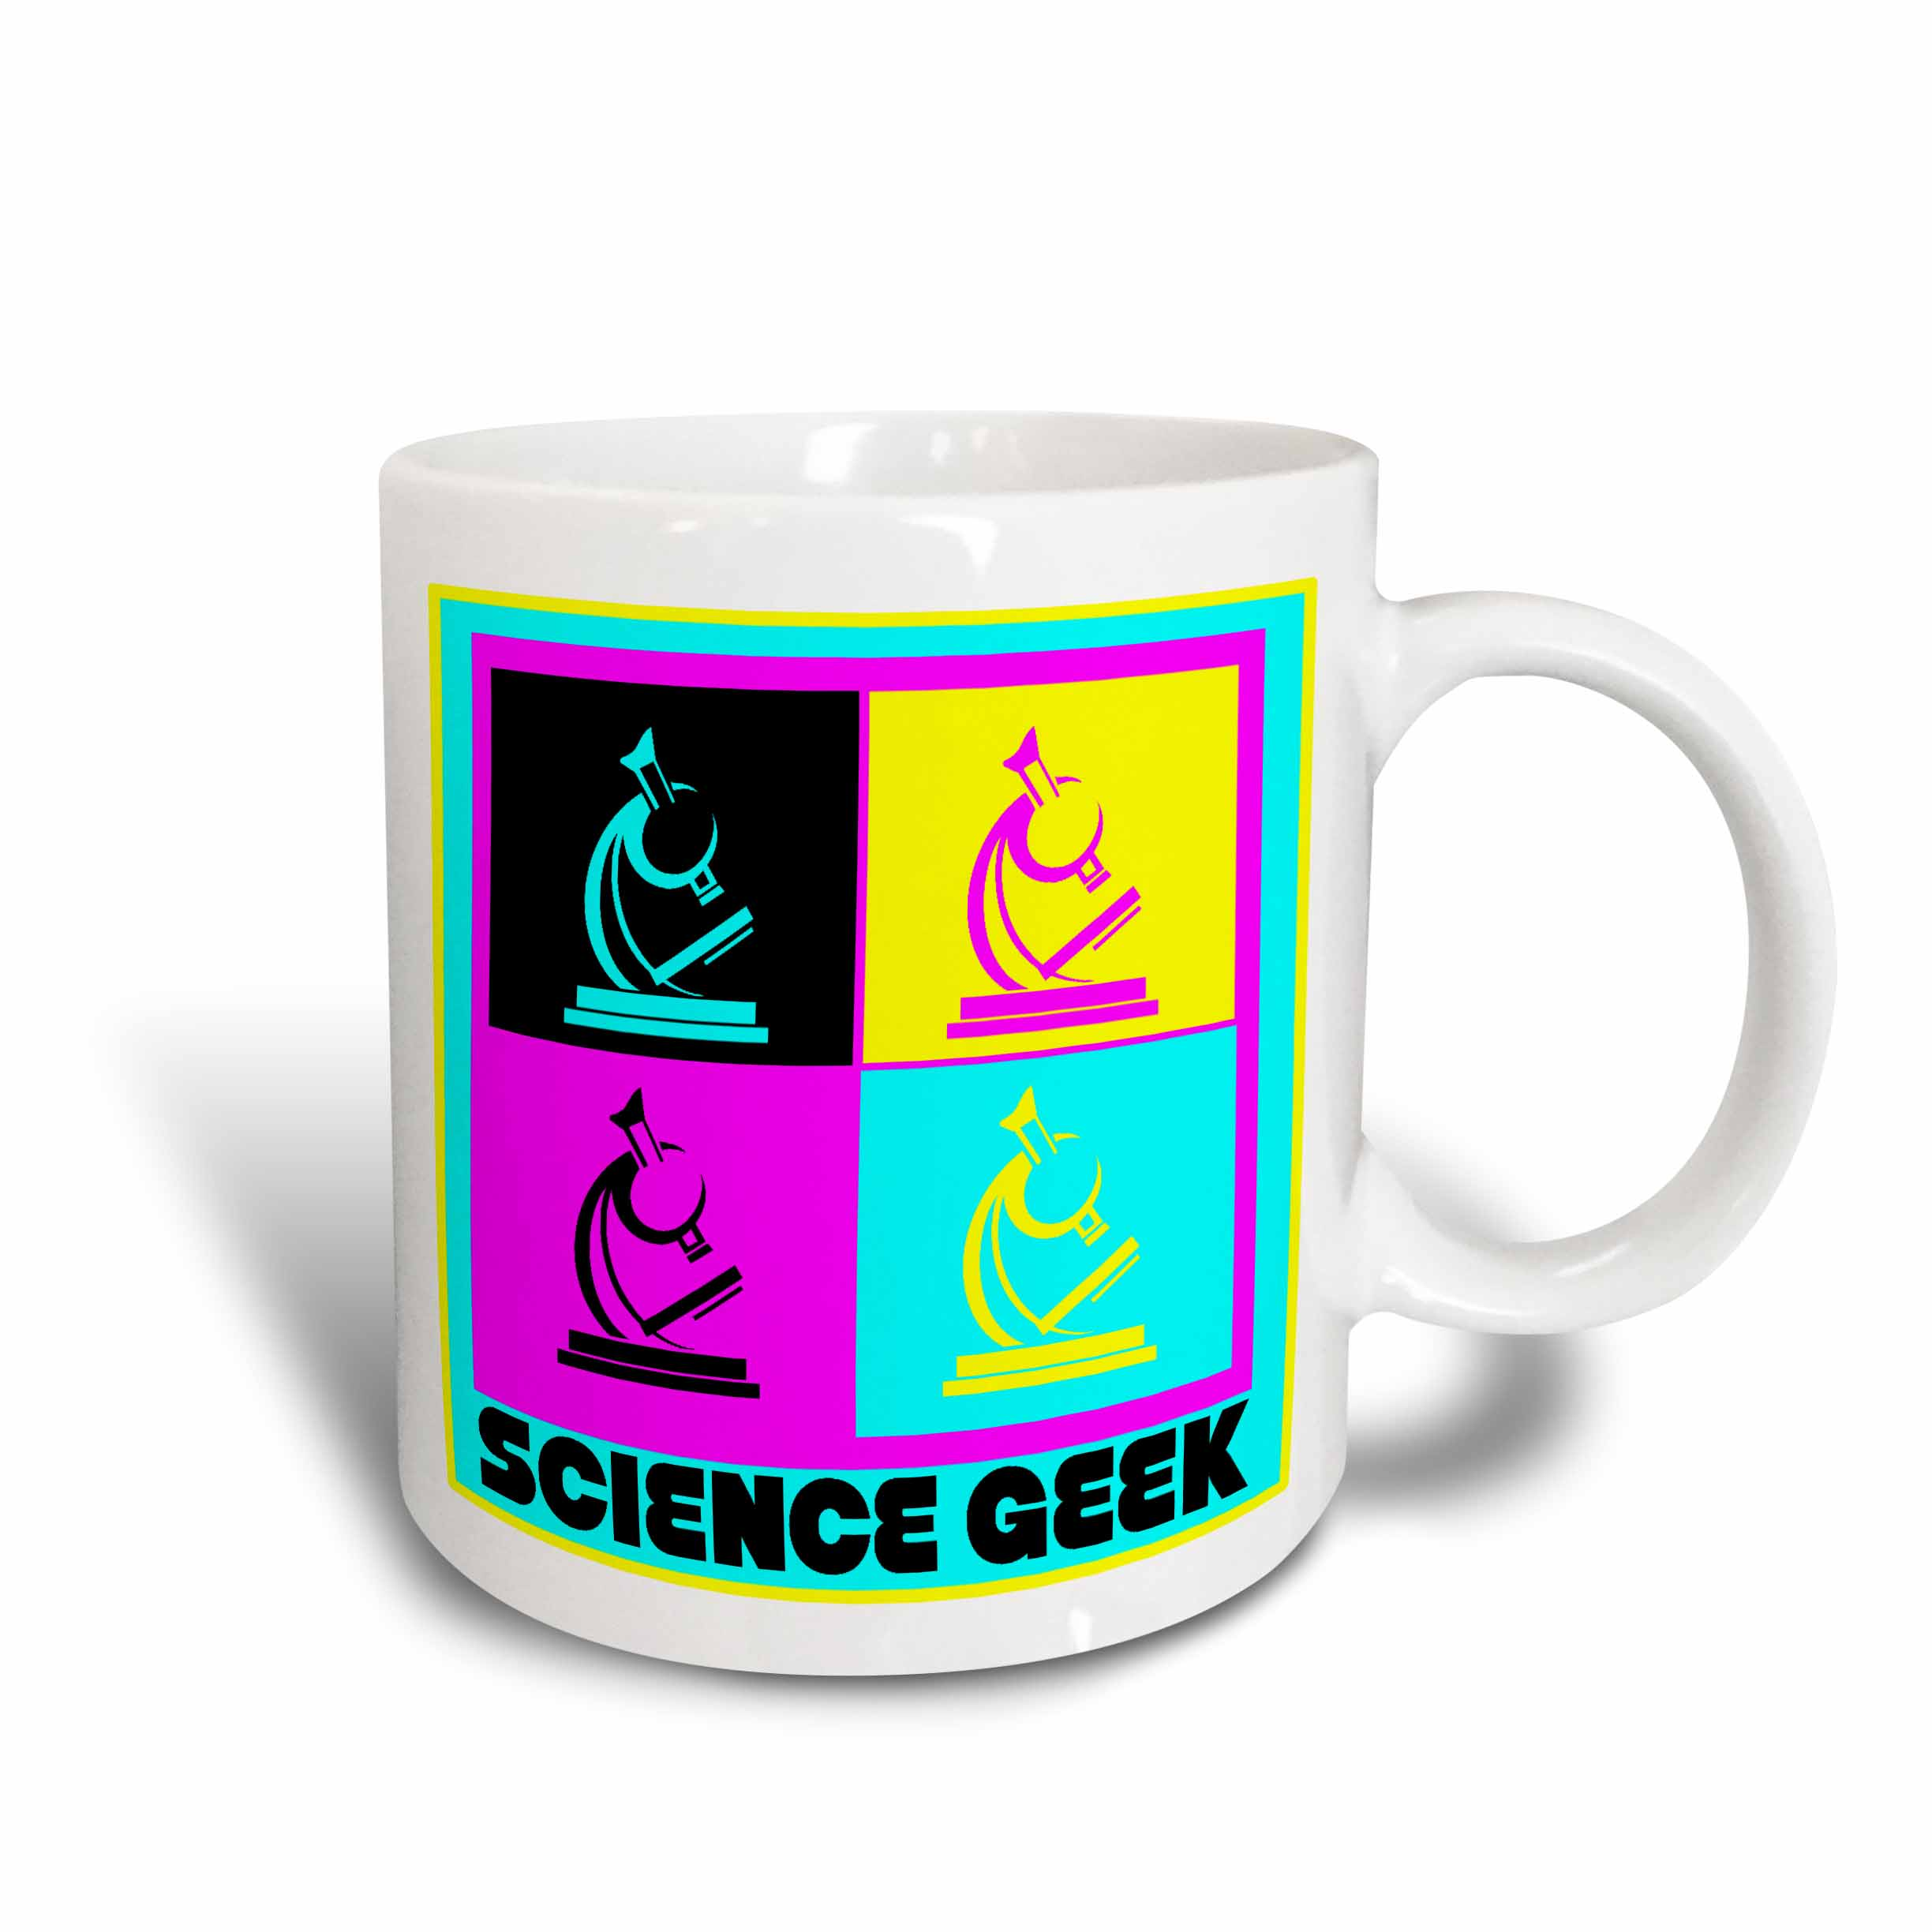 3dRose CMYK Pop art Microscope Science Geek Design Cartoon, Ceramic Mug, 15-ounce